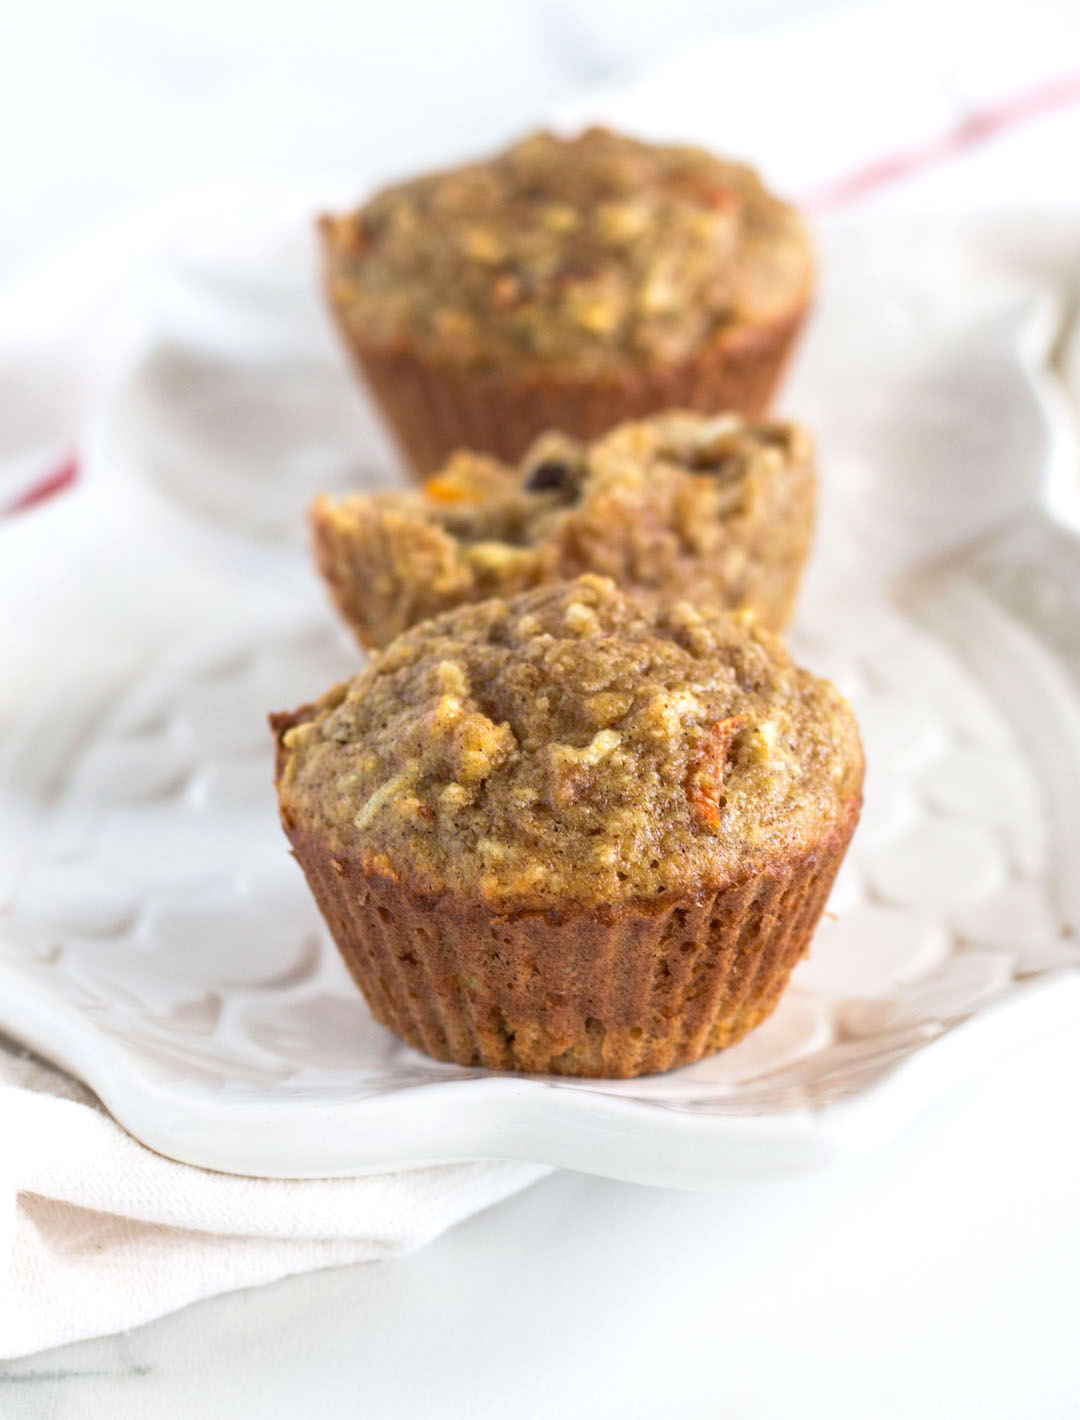 These Morning Glory Muffins are jammed pack with everything good making them a great start to your day! Delicious and tender dairy free and Gluten Free Morning Glory Muffins loaded with fresh fruits and vegetables, crunchy walnuts, sweet coconut and chewy dried cranberries. And they make an equally delicious healthy afternoon snack or dessert.